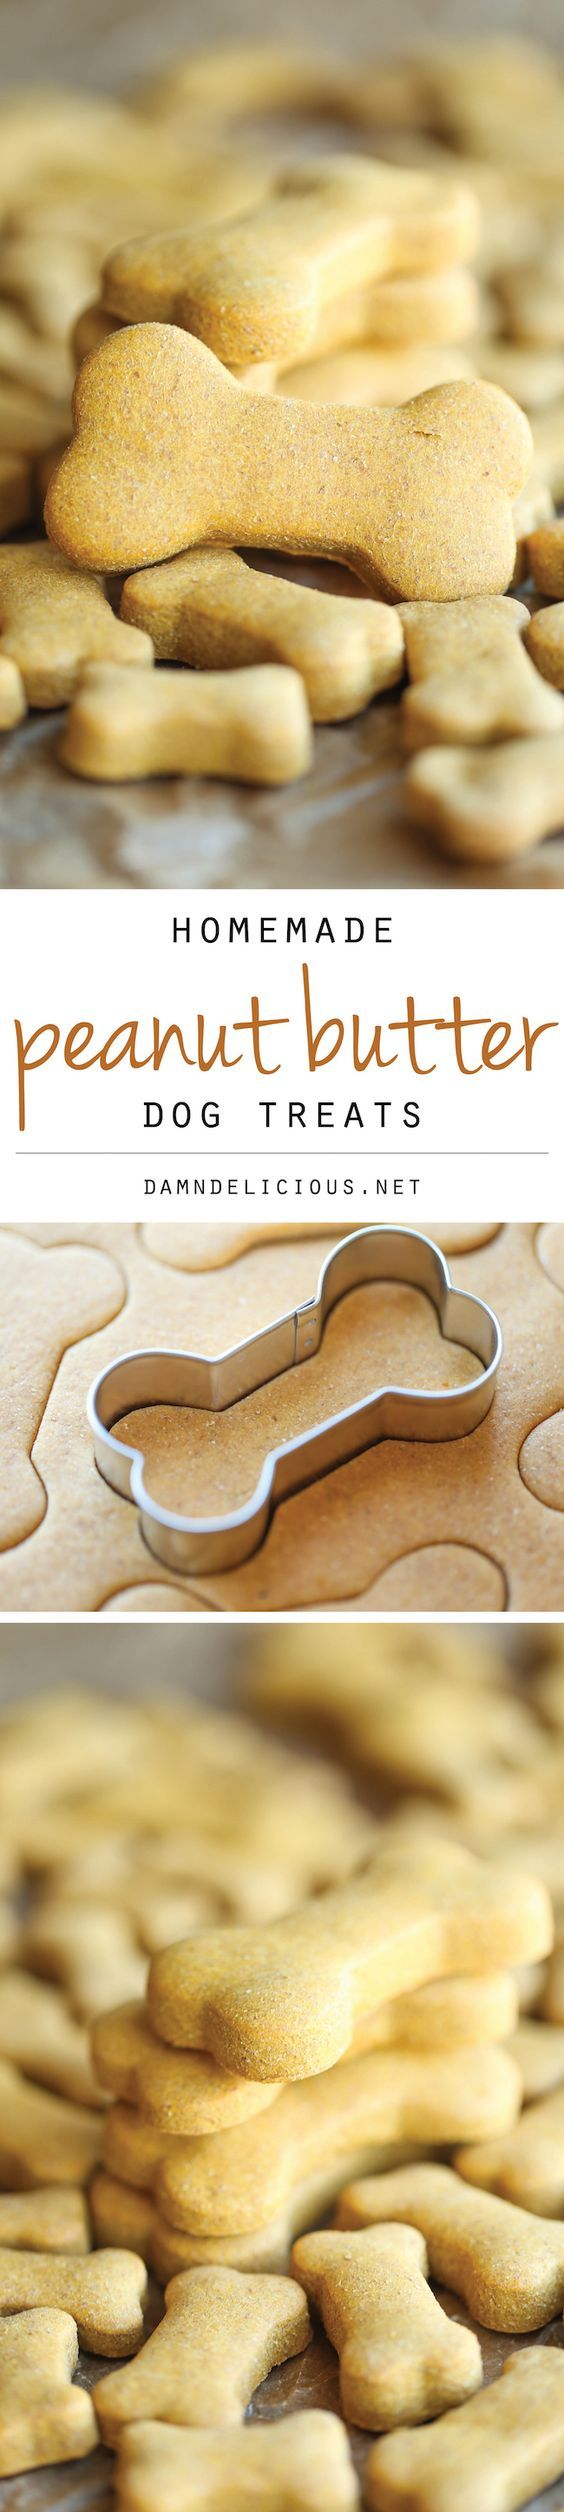 Homemade Peanut Butter Dog Treats - The easiest homemade dog treats ever - simply mix, roll and cut. Easy peasy, and so much healthier than store-bought!: